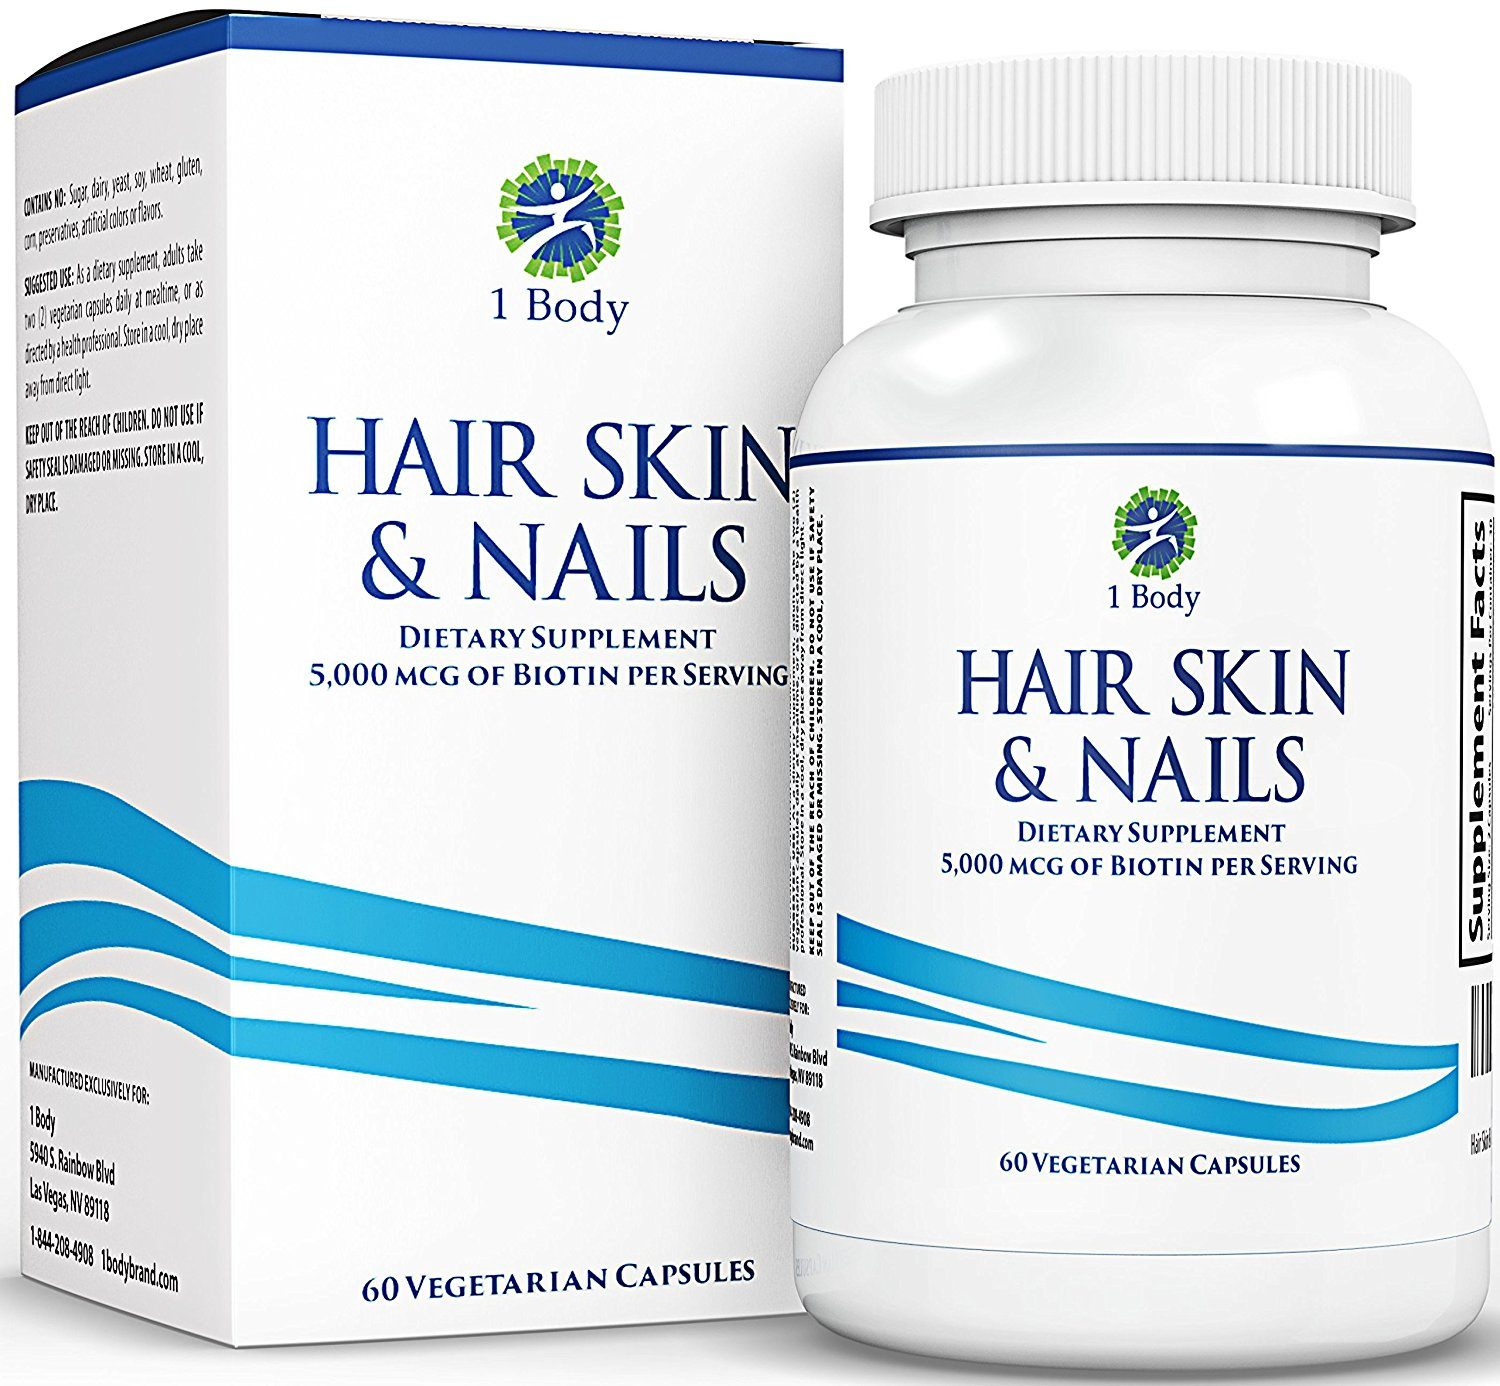 What Is The Best Vitamin Stack For Hair And Nails